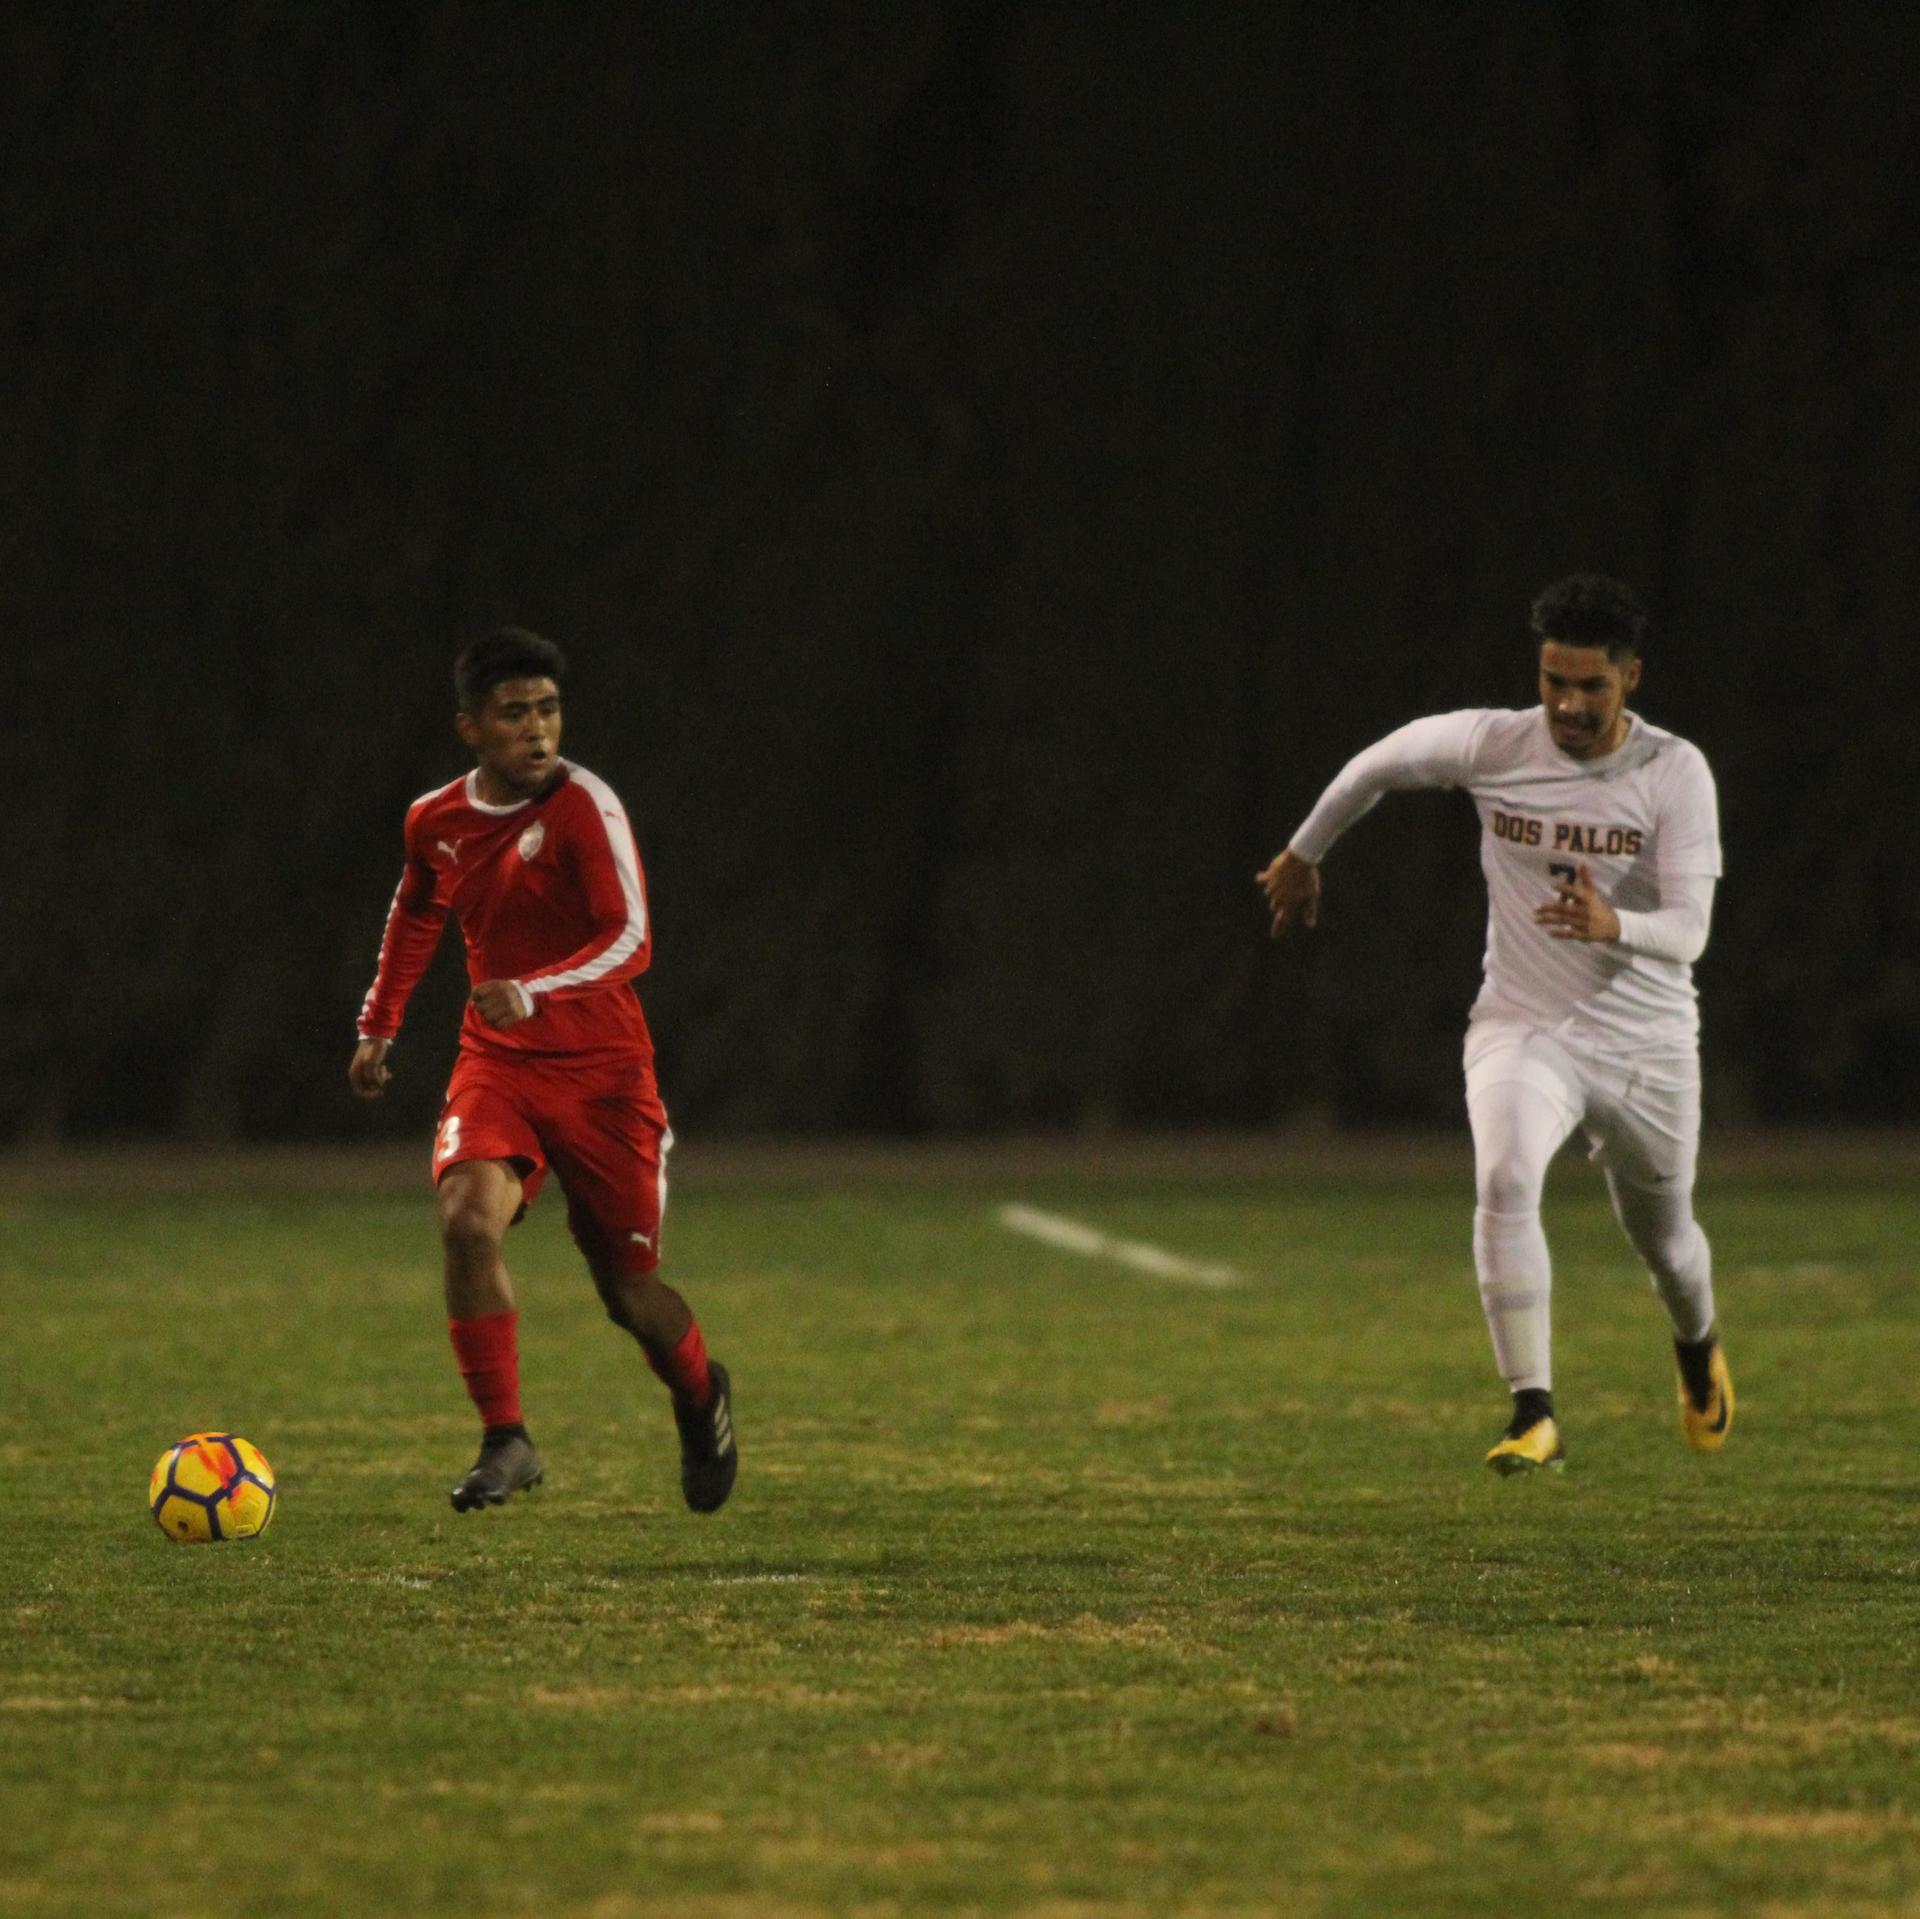 Alejandro Montes Running with the Ball